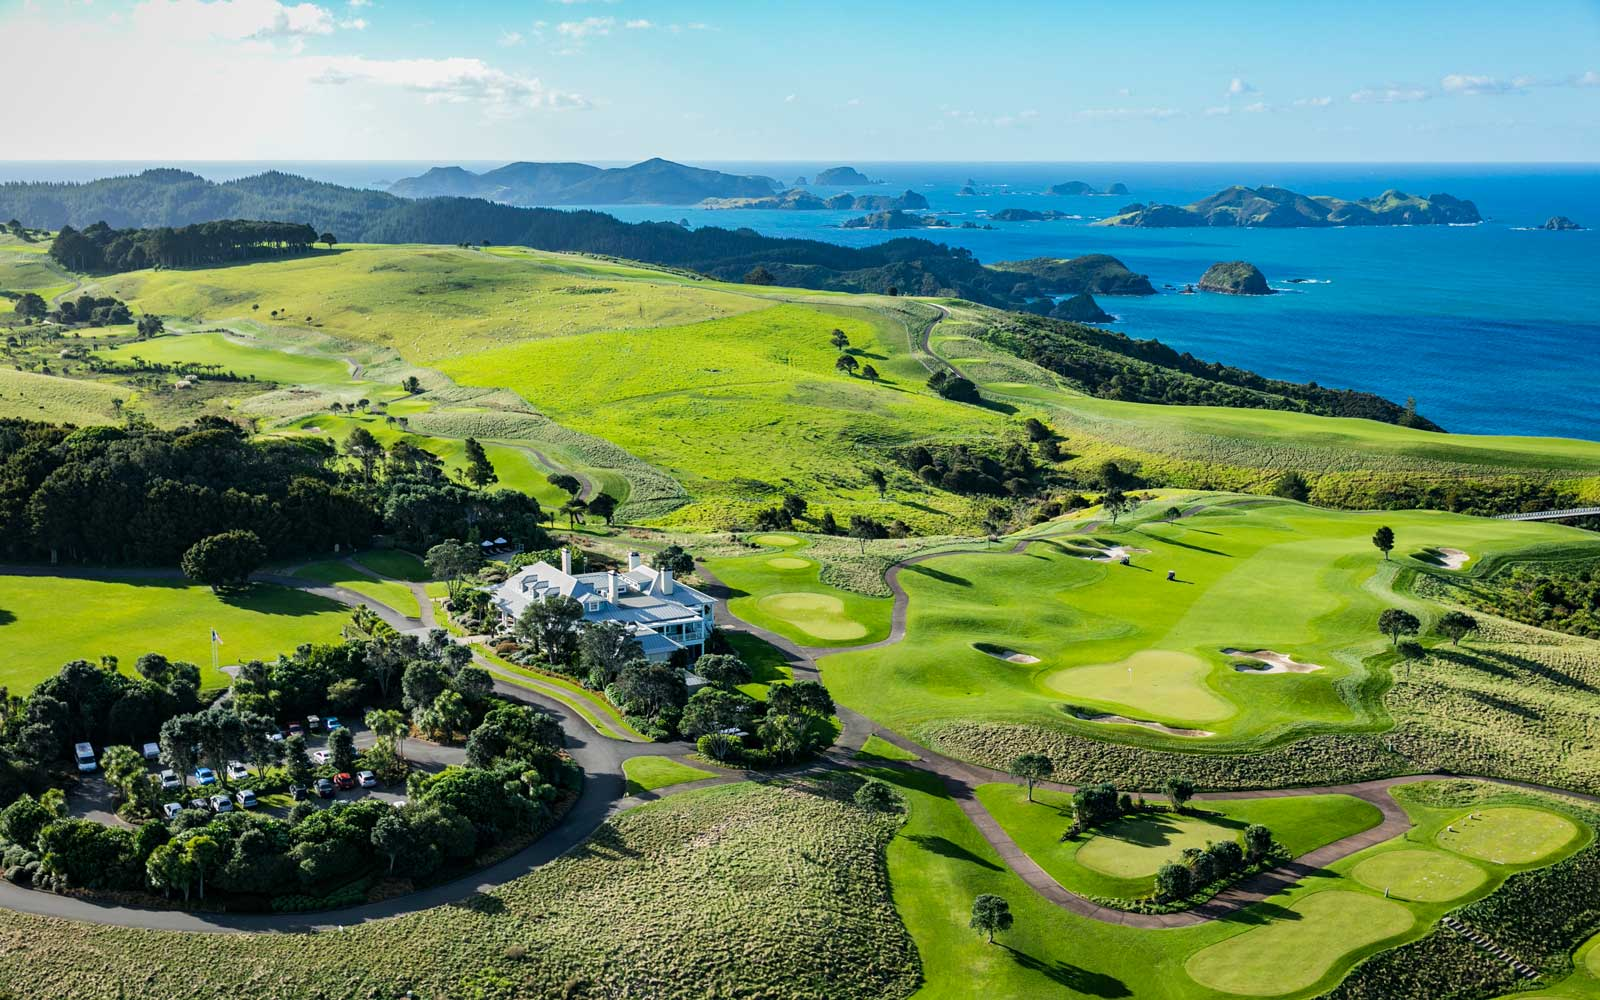 Save 33% on a Three-night Stay at the Lodge at Kauri Cliffs in New Zealand